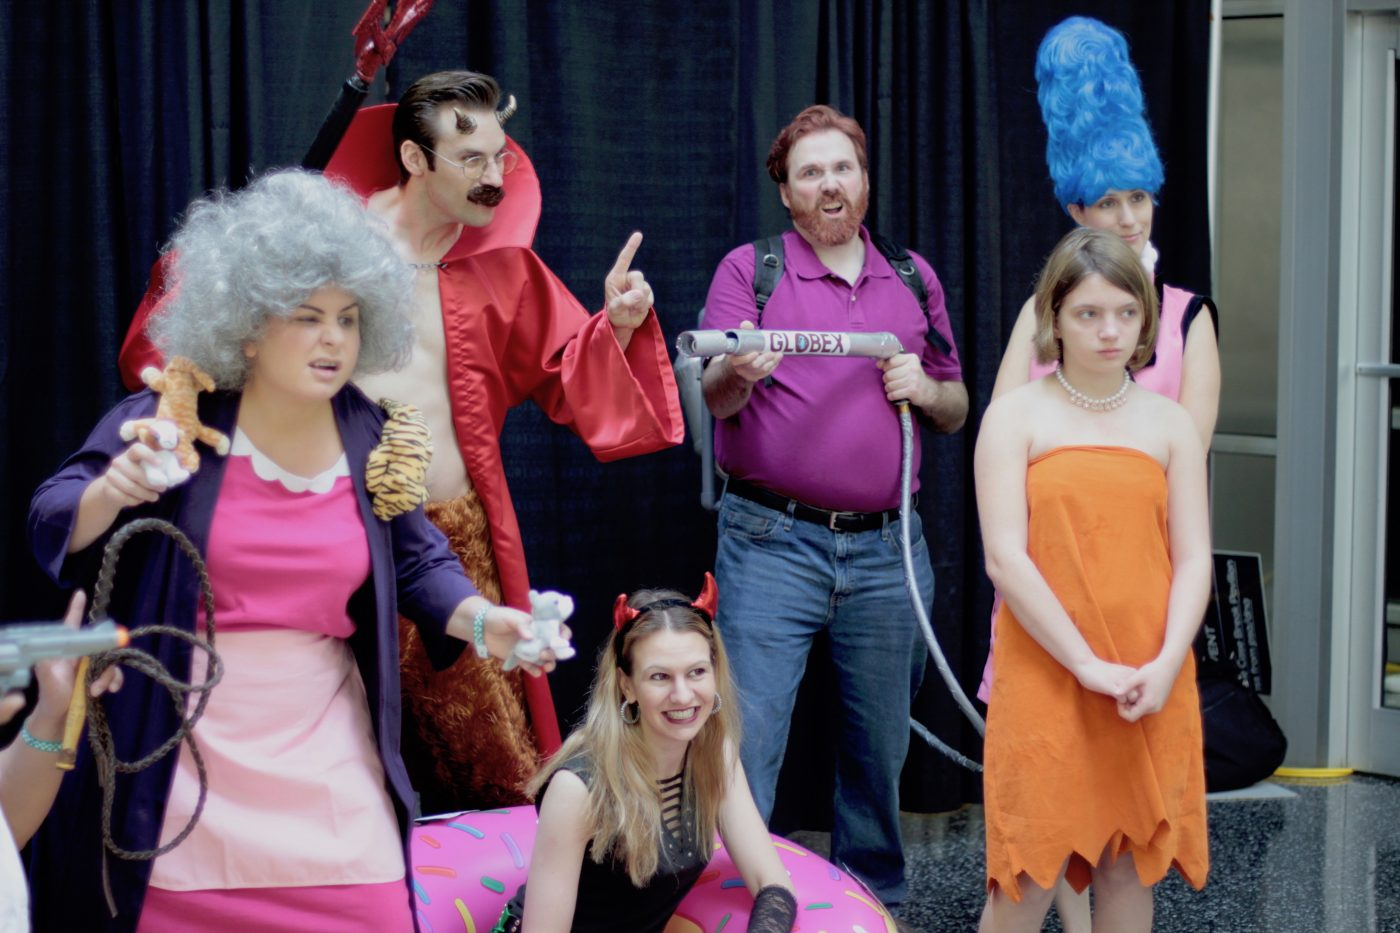 Wizard World Chicago: The Best TV and movie cosplay